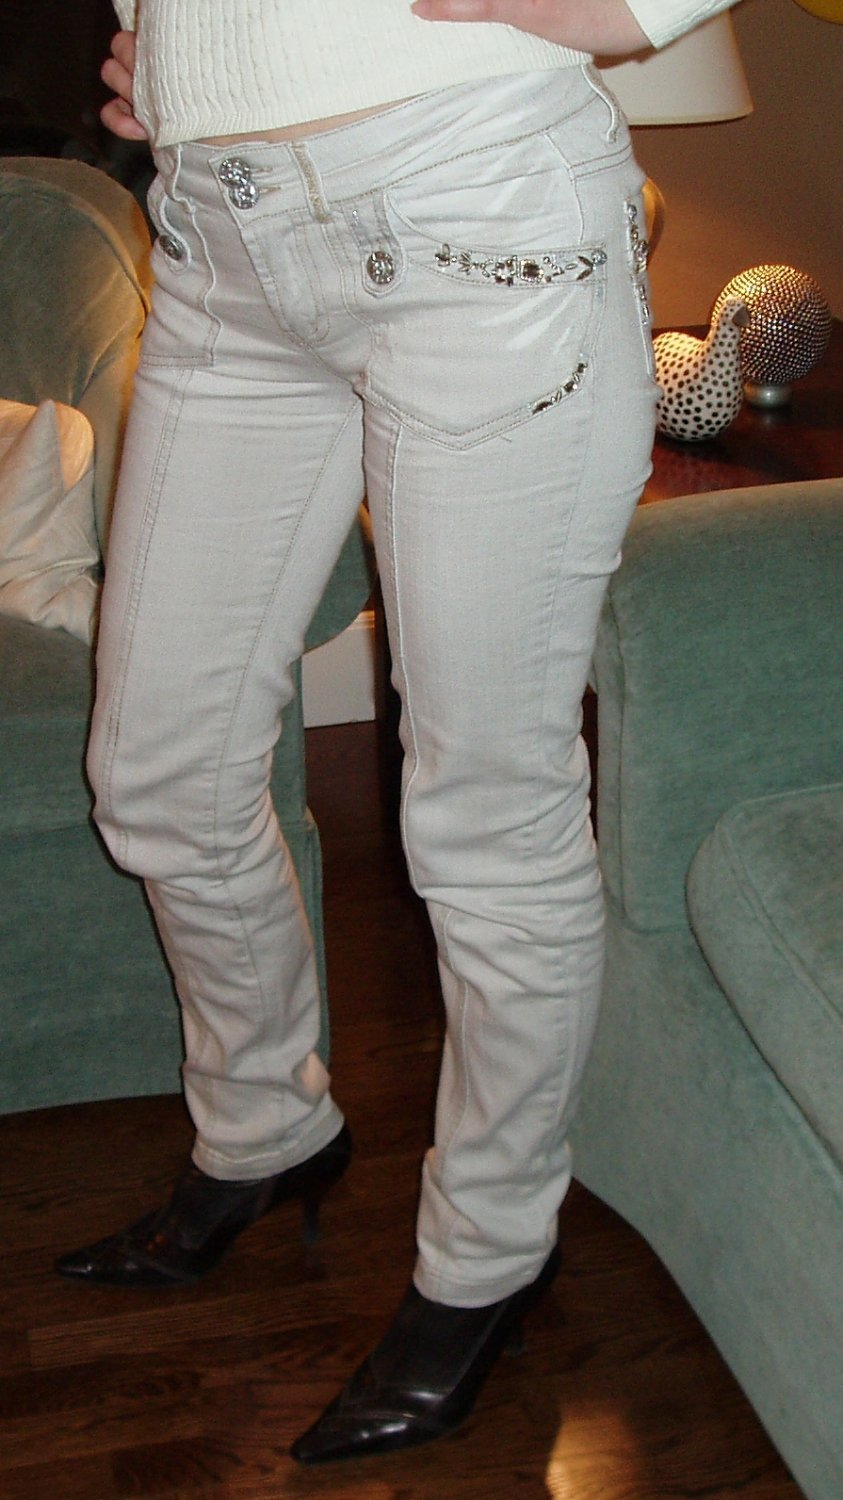 Women's off-white Rosa & Rose jeans w/rhinest, size S